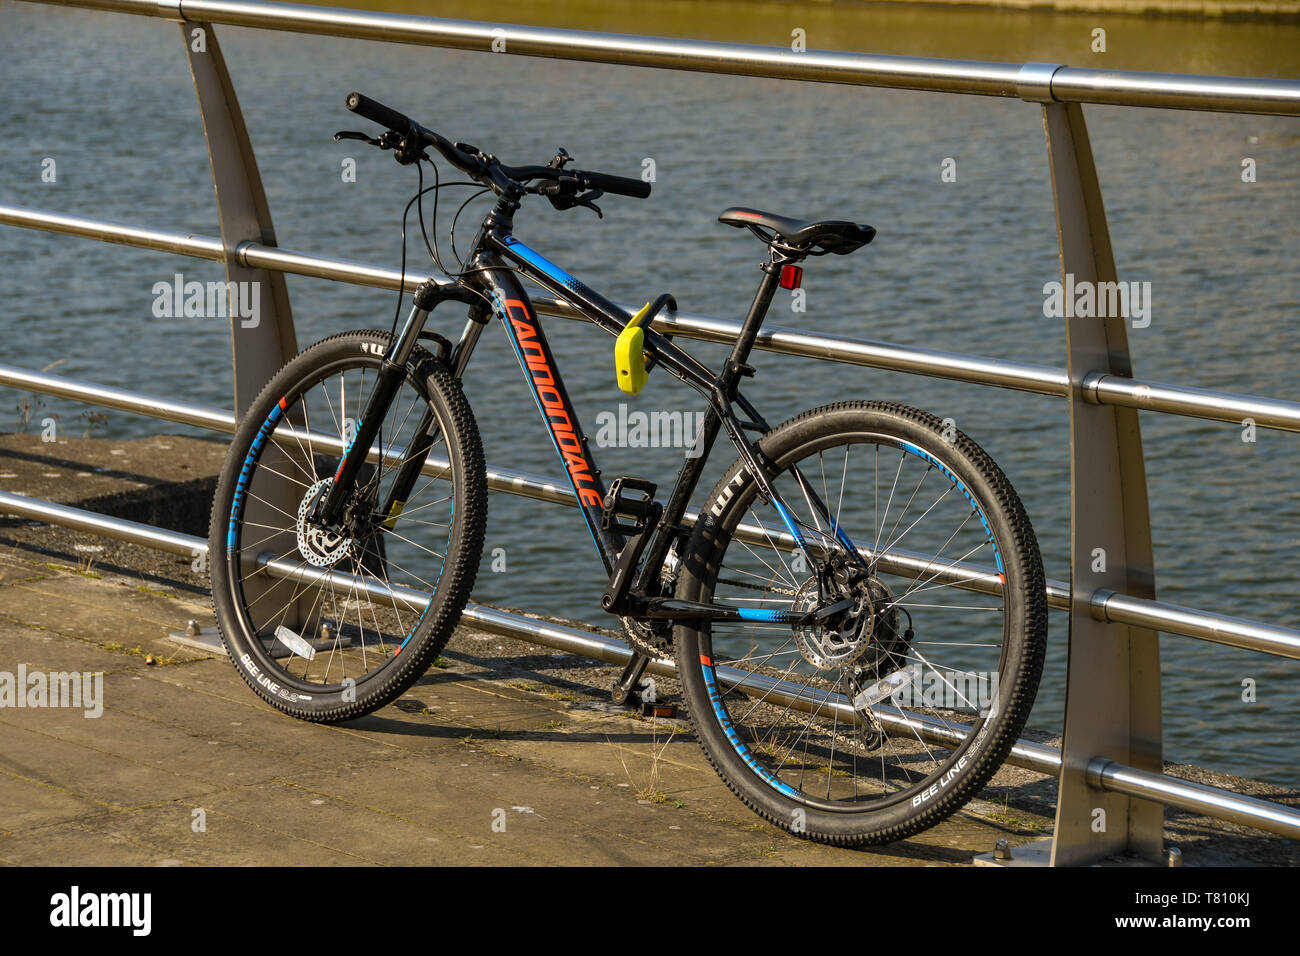 SWANSEA, WALES - JULY 2018: Bike secured to metal railings with a cycle lock to prevent theft. - Stock Image